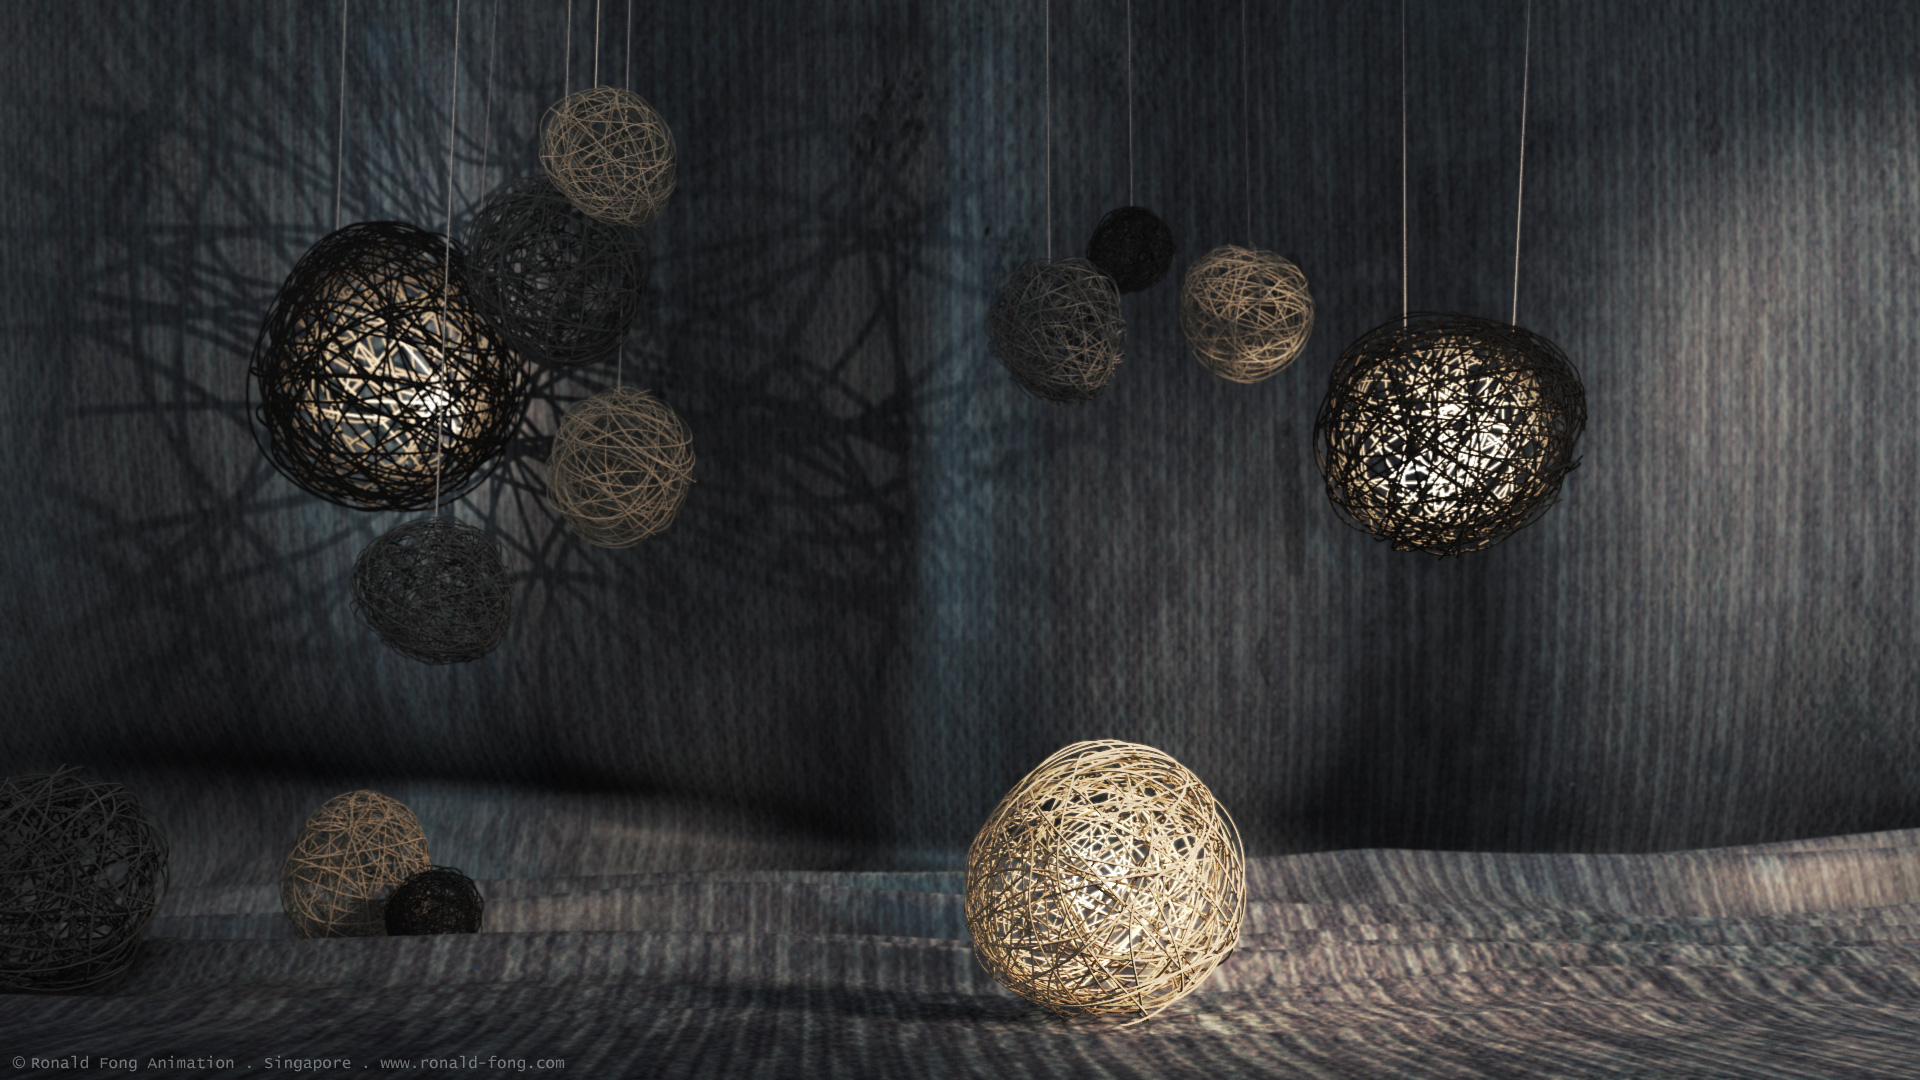 Wire Yarn CG Light Design by Ronald Fong